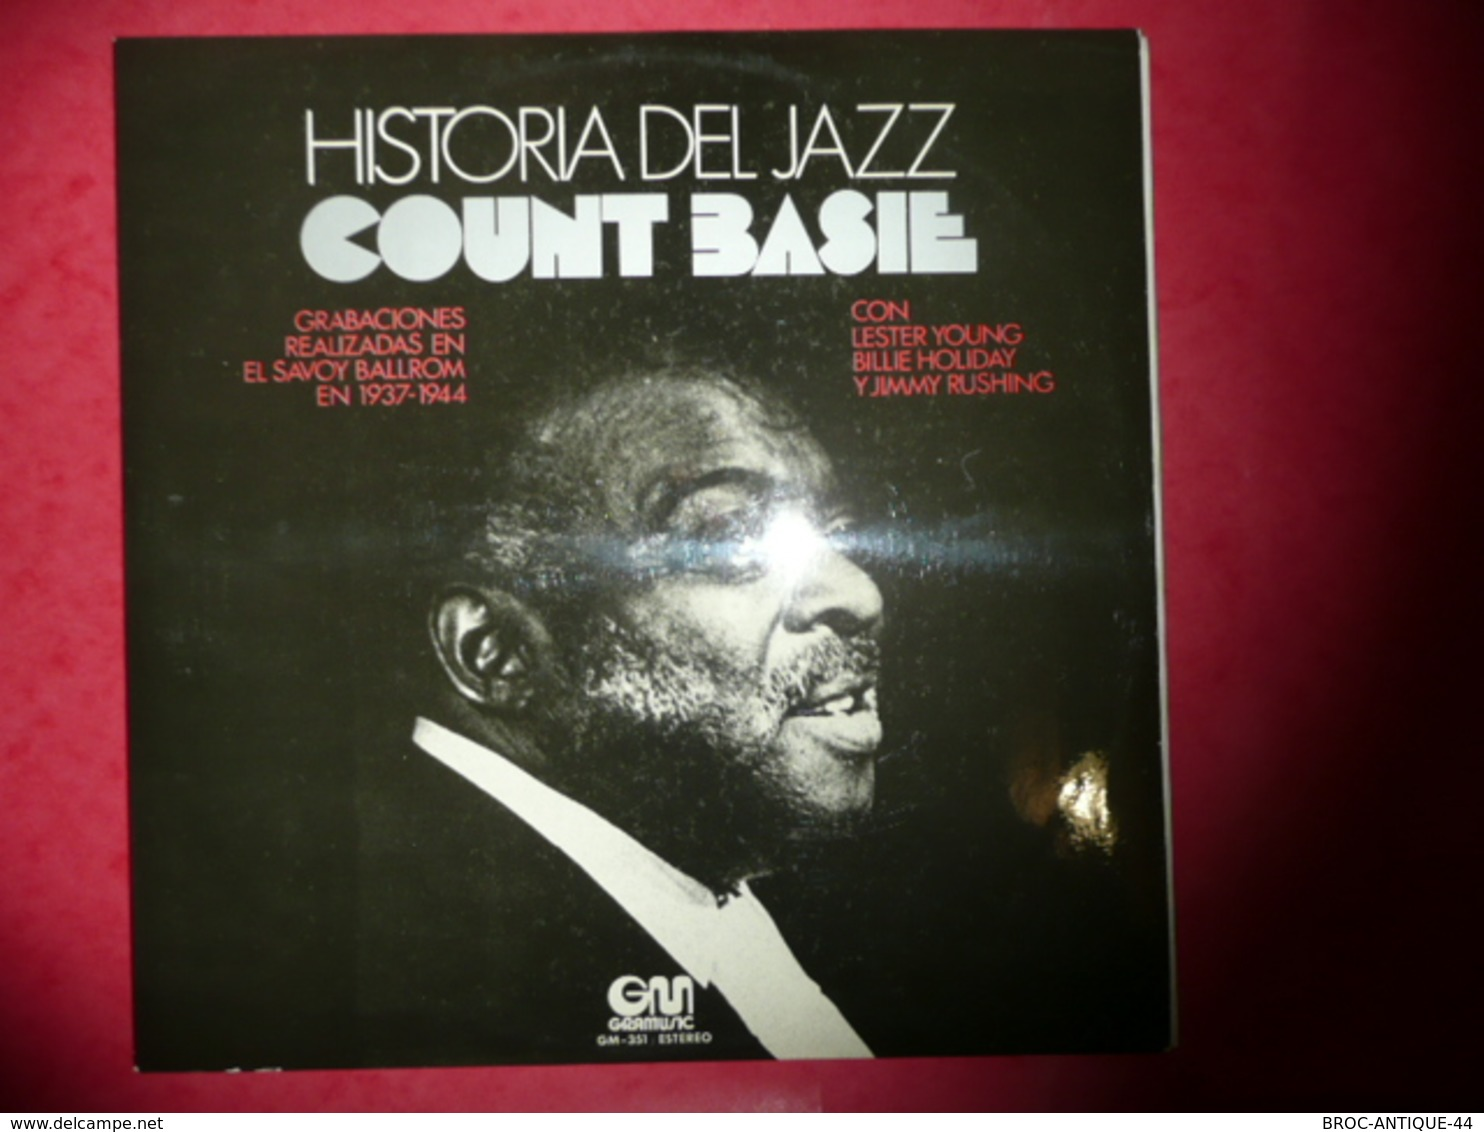 LP33 N°557 - COUNT BASIE - HISTORIA DEL JAZZ -  CON L. YOUNG, B. HOLIDAY & J. RUSHING - COMPILATION 13 TITRES - Jazz